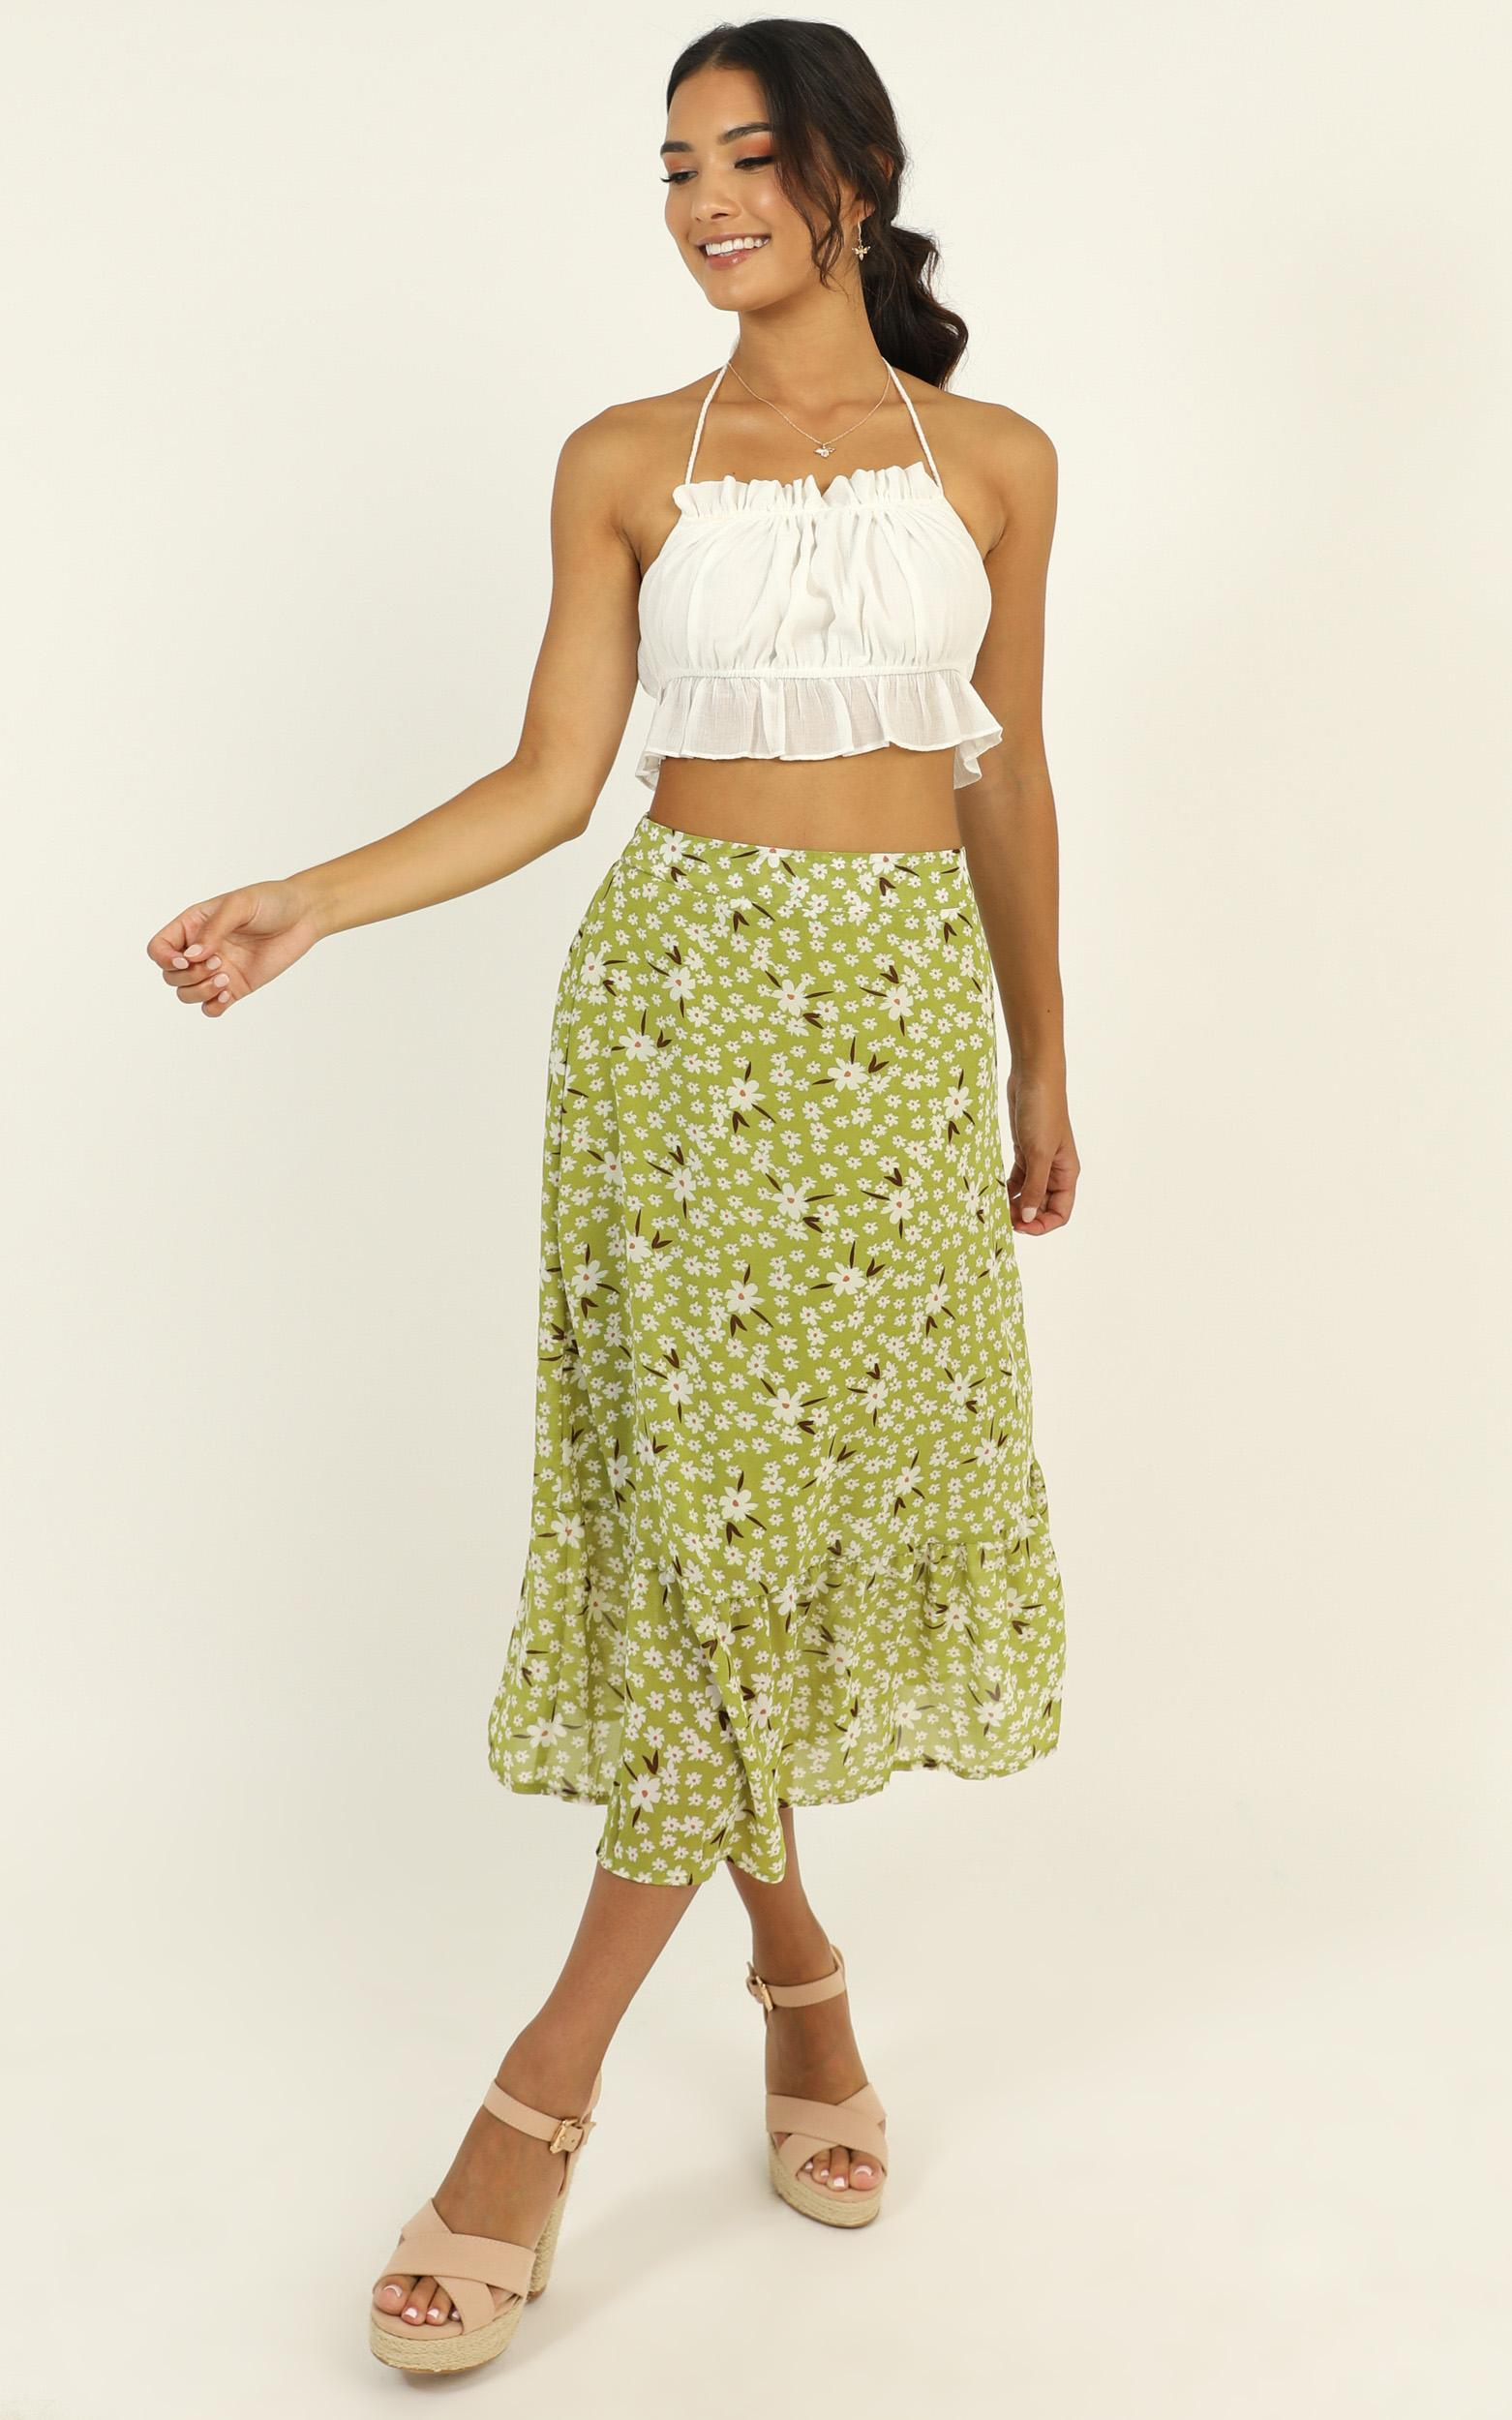 Actions Speak Skirt in green floral - 14 (XL), Green, hi-res image number null